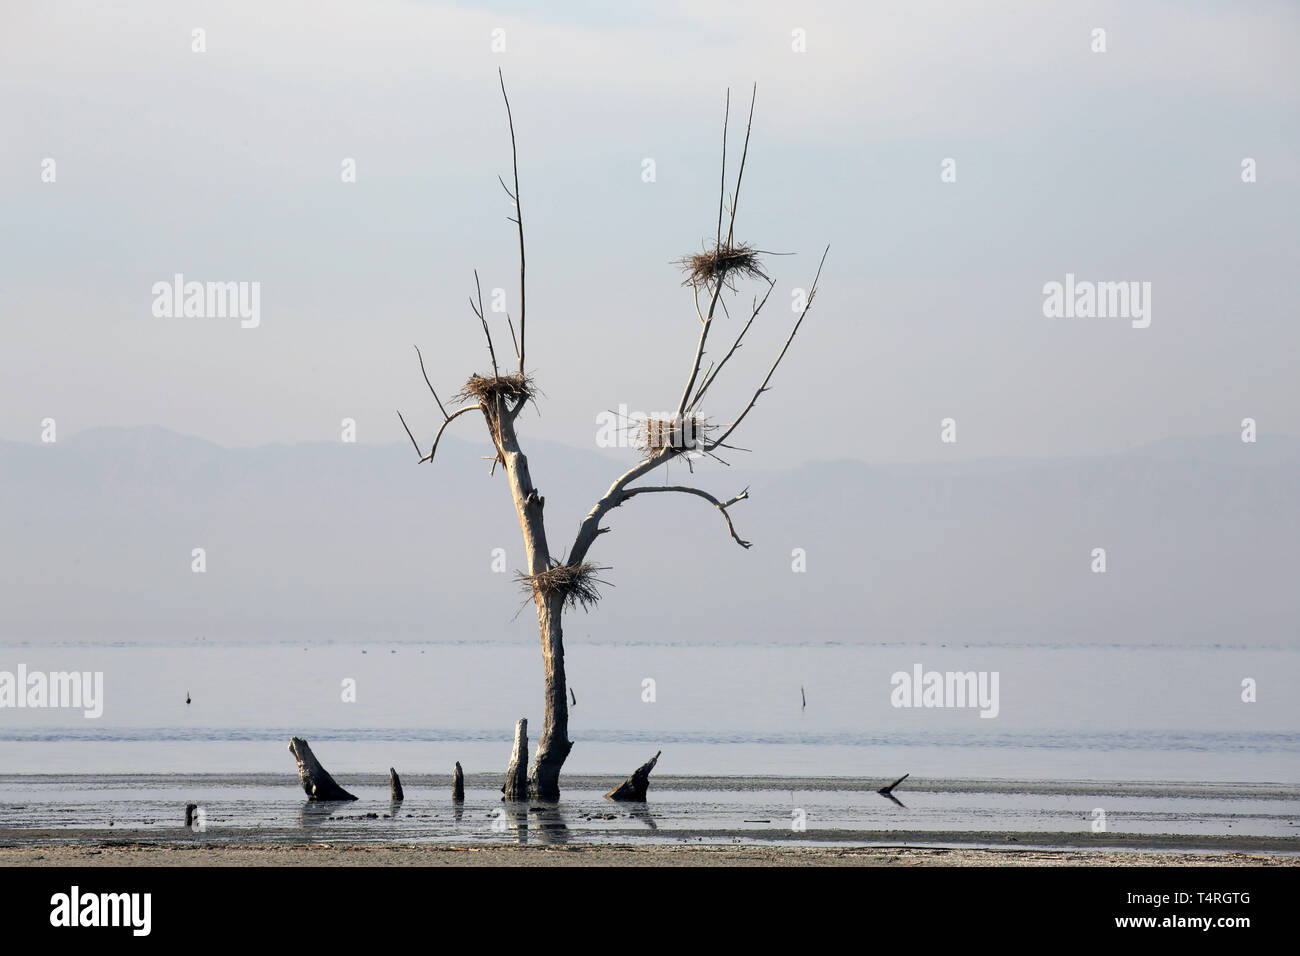 Bombay Beach, California, USA. 10th Dec, 2016. Mudflats and dead tress with nests on the shore of the Salton Sea. The Salton Sea is a shallow, saline, endorheic rift lake located directly on the San Andreas Fault, predominantly in Southern California's Imperial and Coachella Valleys. The deepest point of the sea is 5 ft (1.5 m) higher than the lowest point of Death Valley. The most recent inflow of water from the now heavily controlled Colorado River was accidentally created by the engineers of the California Development Company in 1905. The resulting outflow overwhelmed the engineered canal, - Stock Image